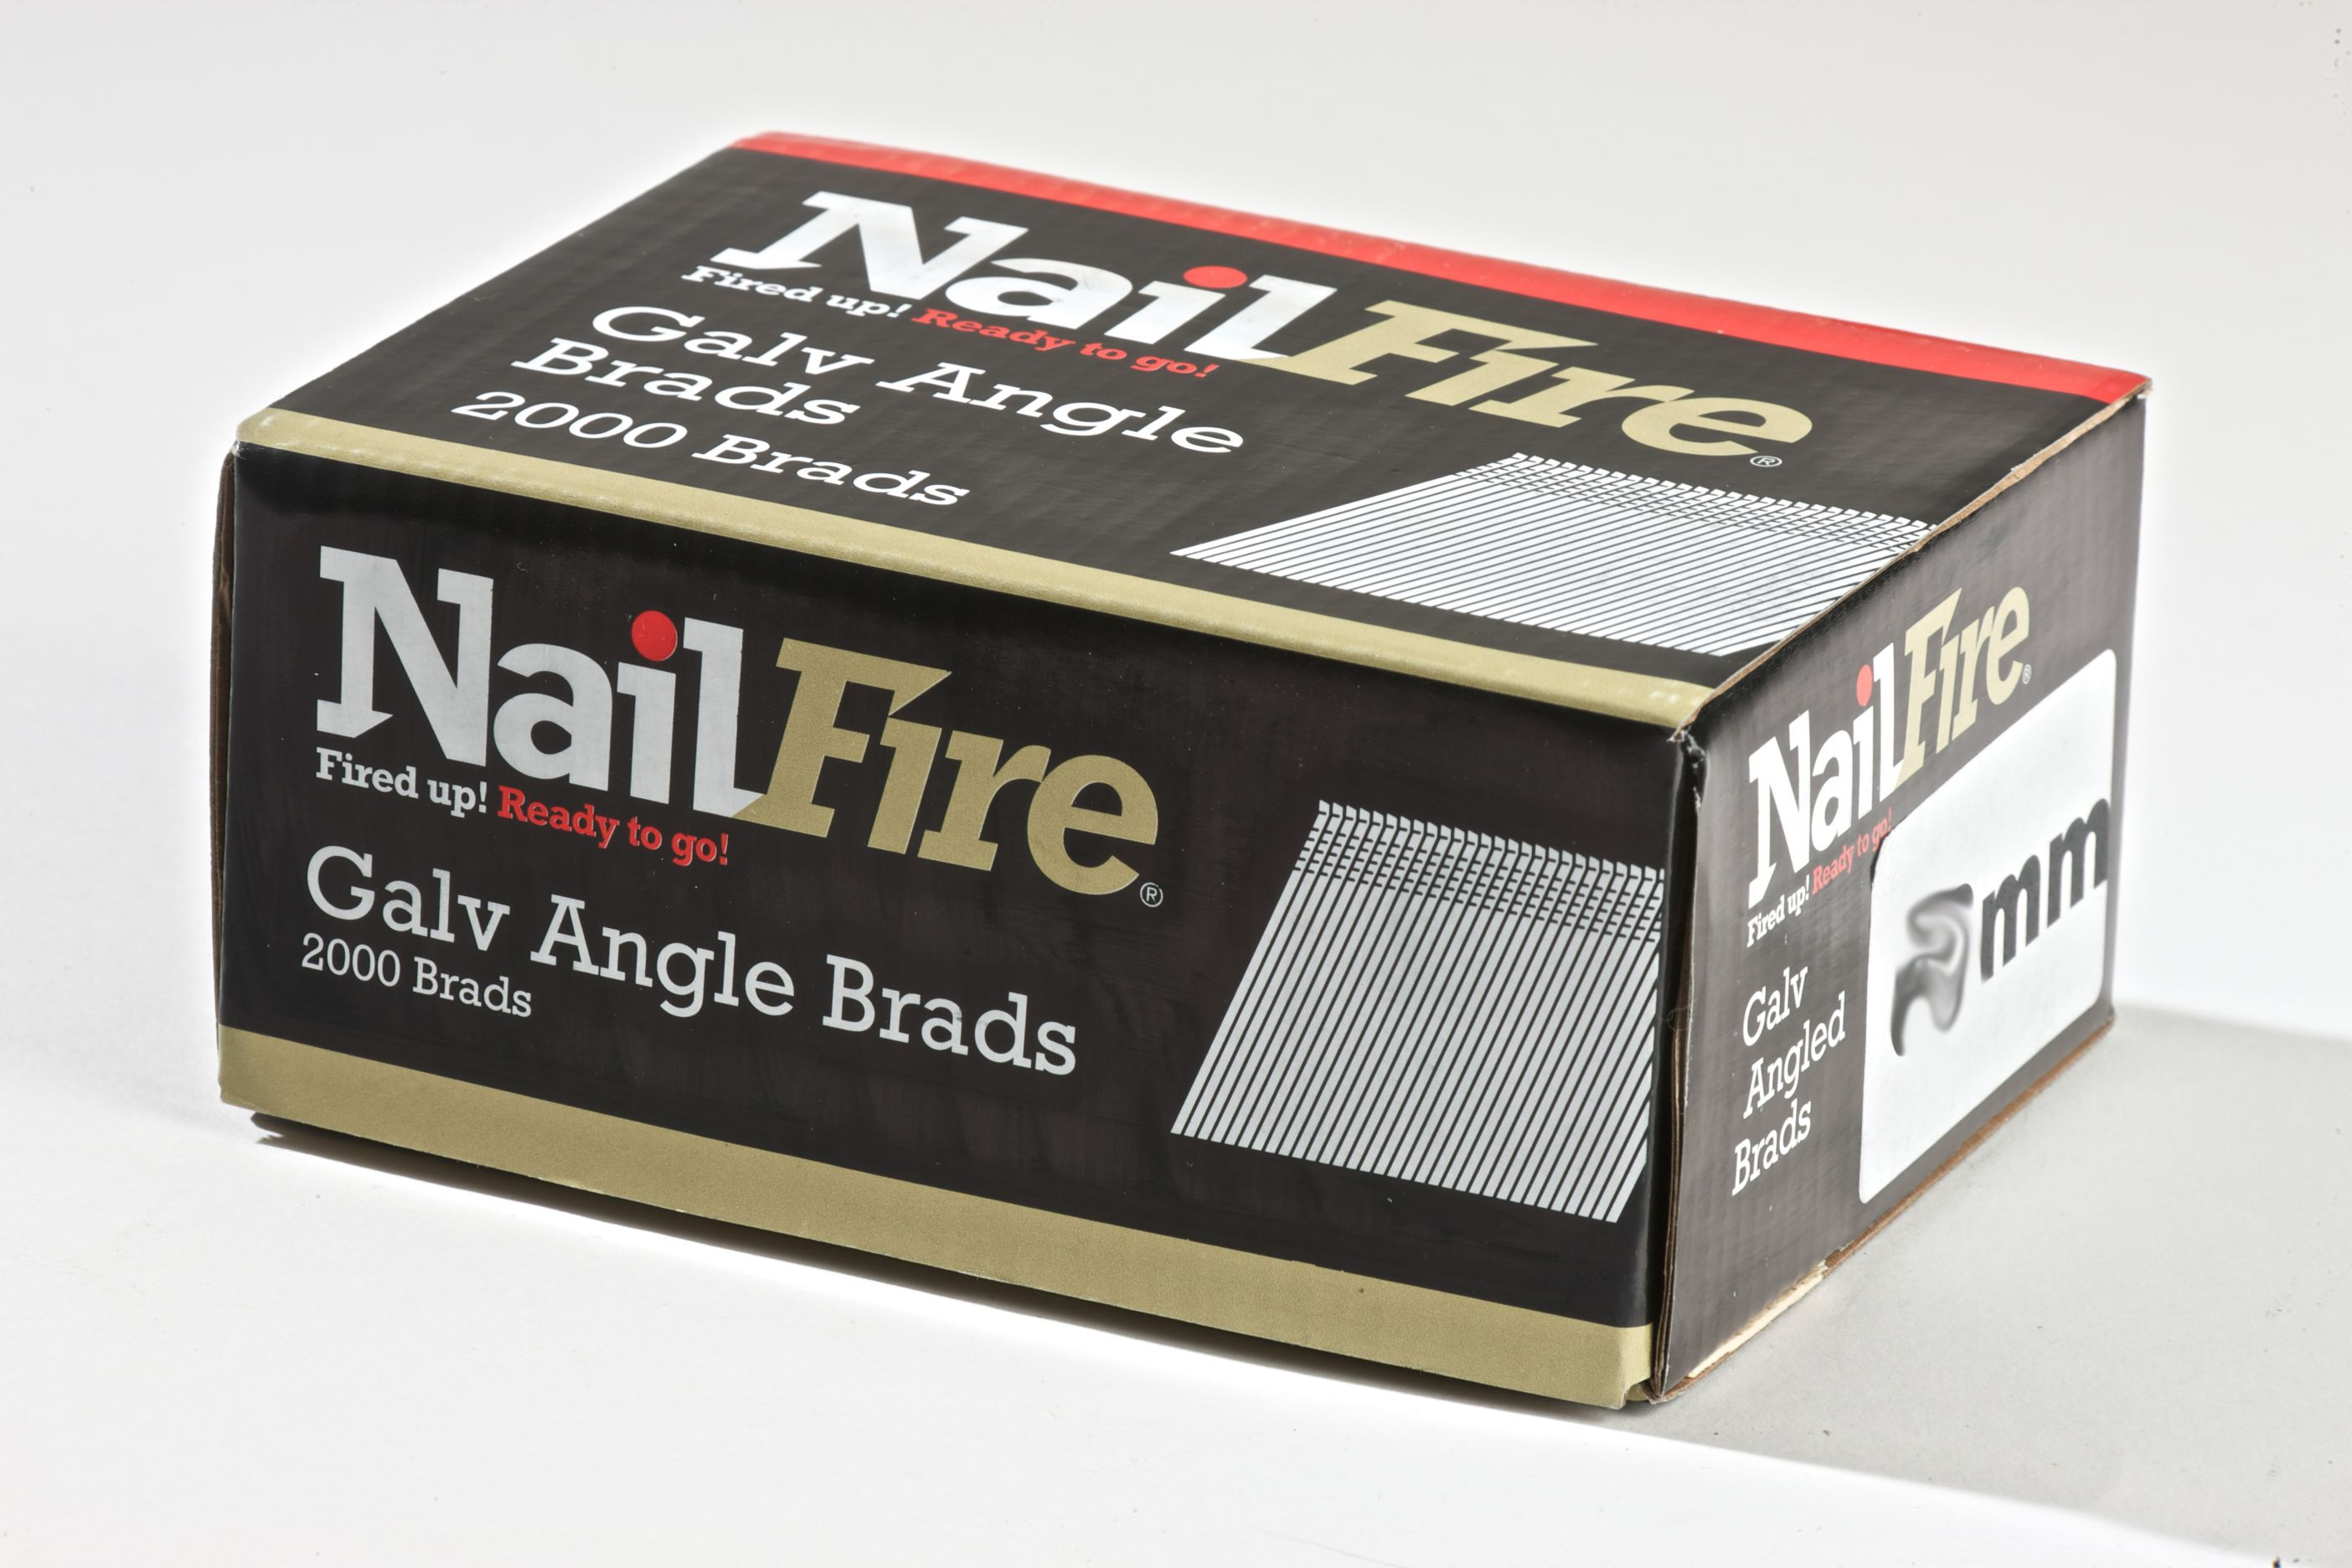 NAILFIRE 2ND FIX ANGLED E-GALV BRAD & FUEL PACK 38MM (TUB OF 2000)